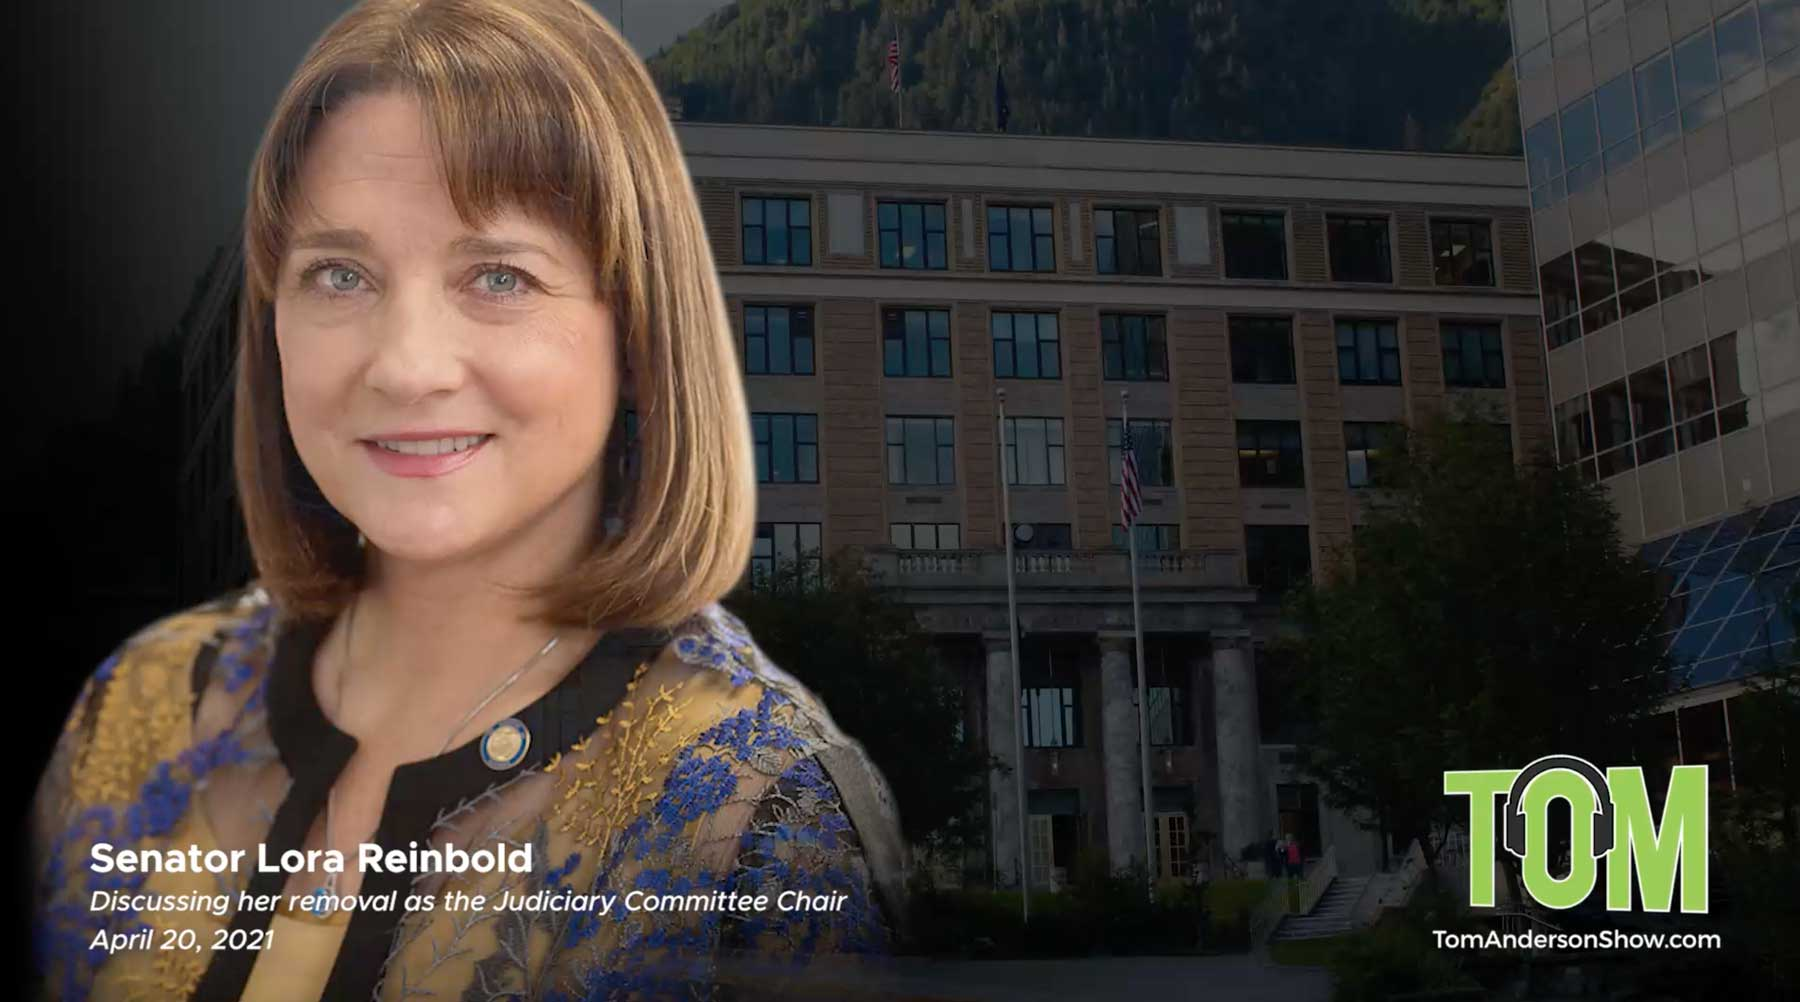 Senator Lora Reinbold responds to the State Senate's removal of her Judiciary Committee Chairmanship